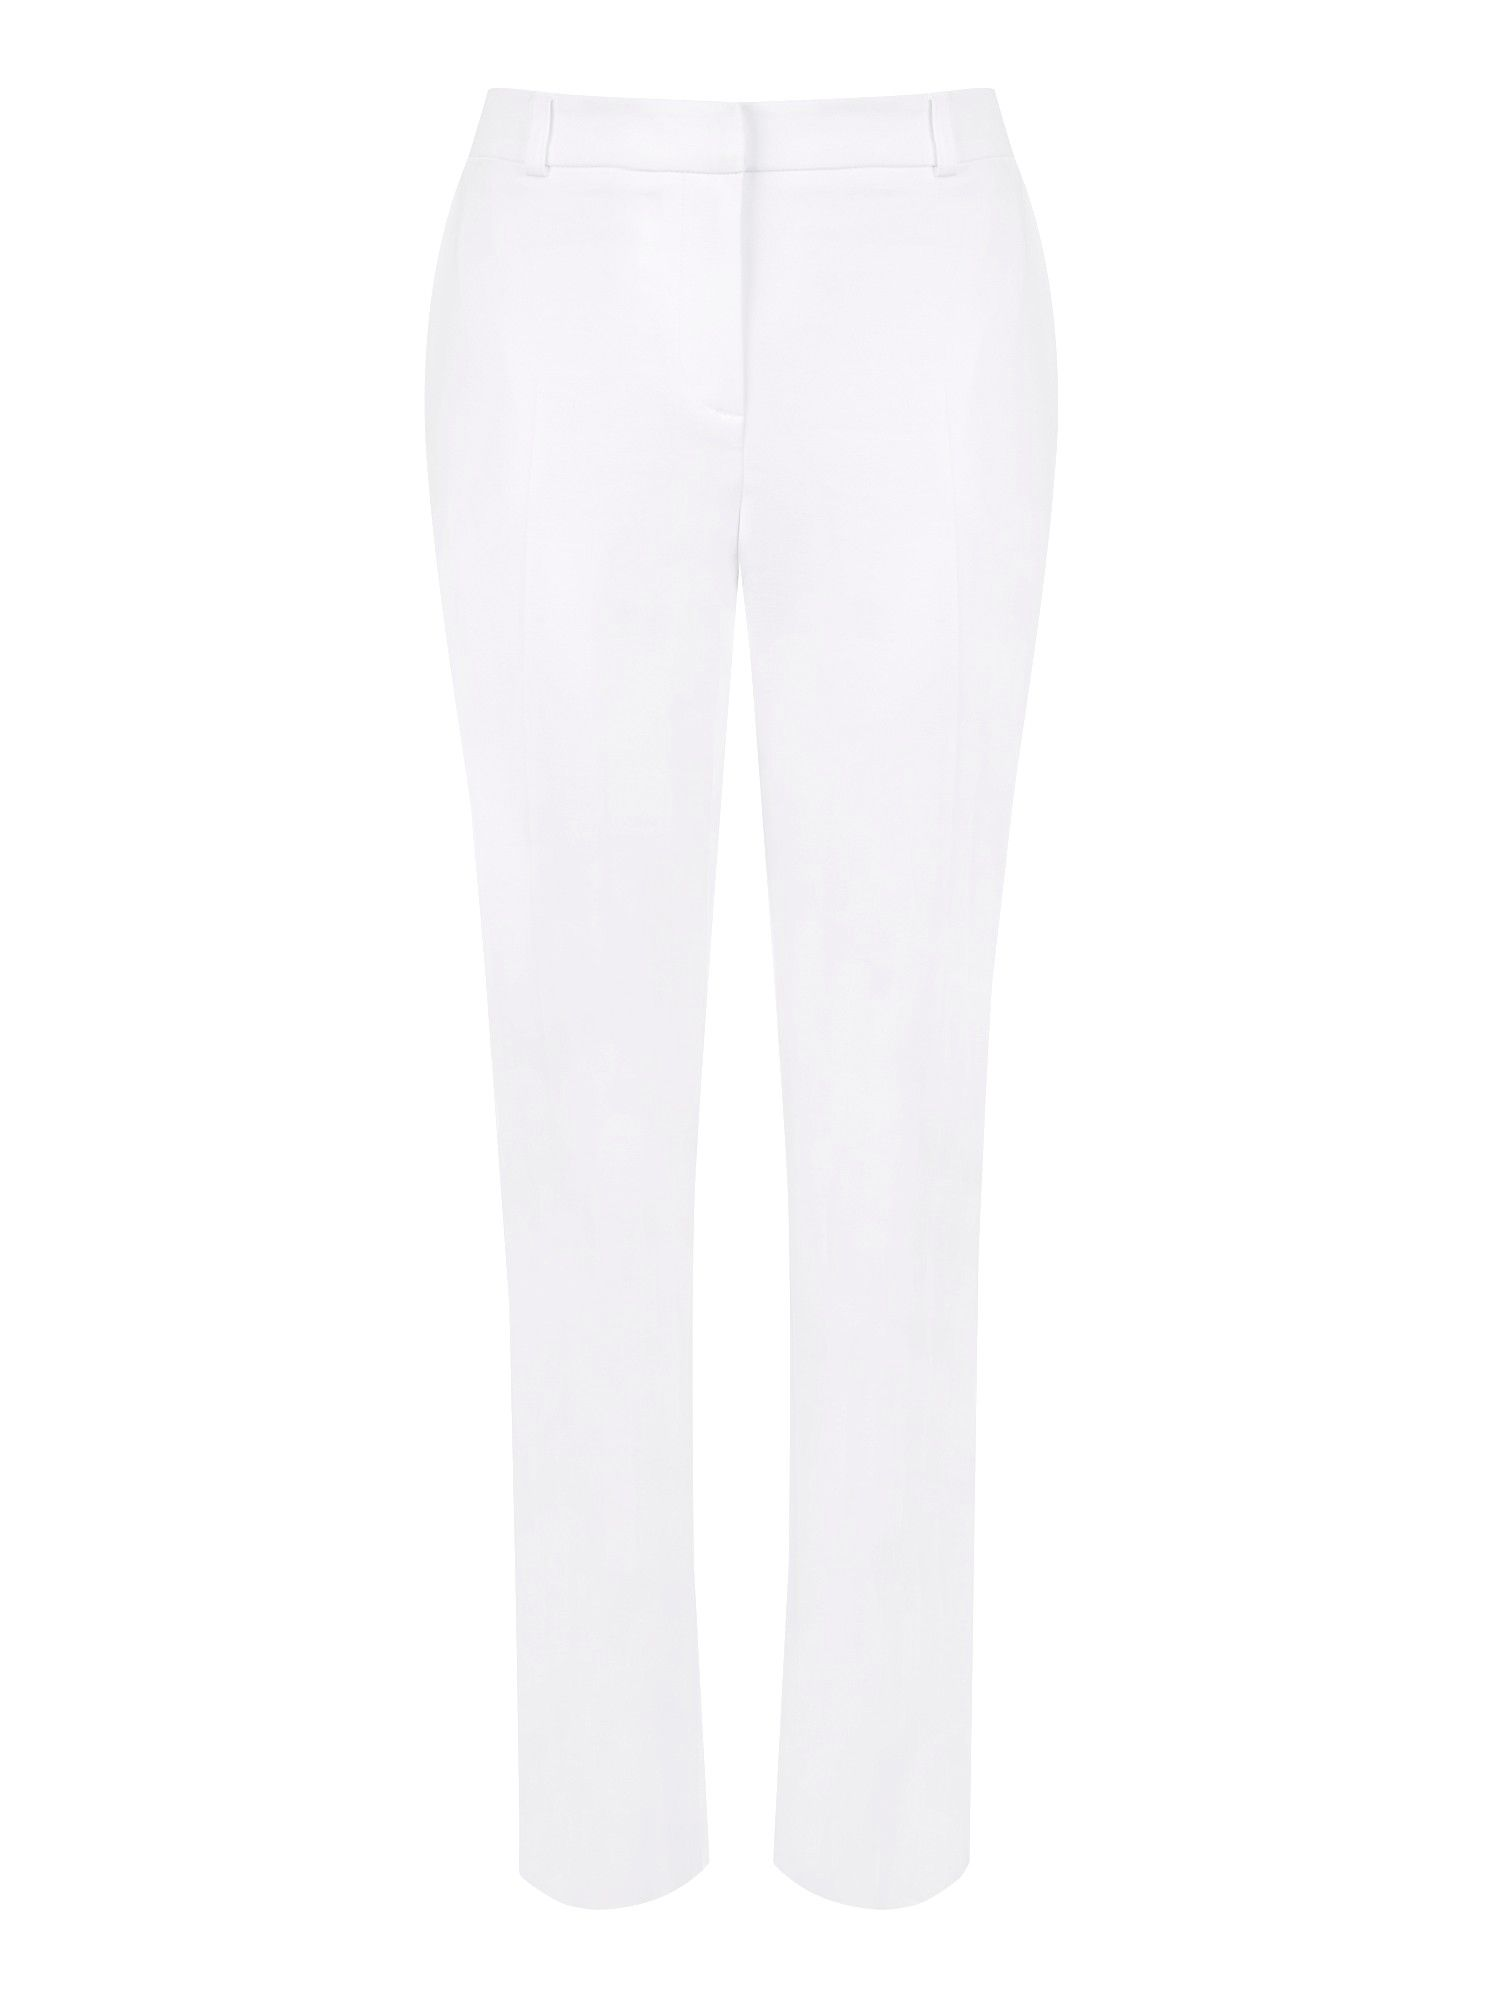 White ankle trouser